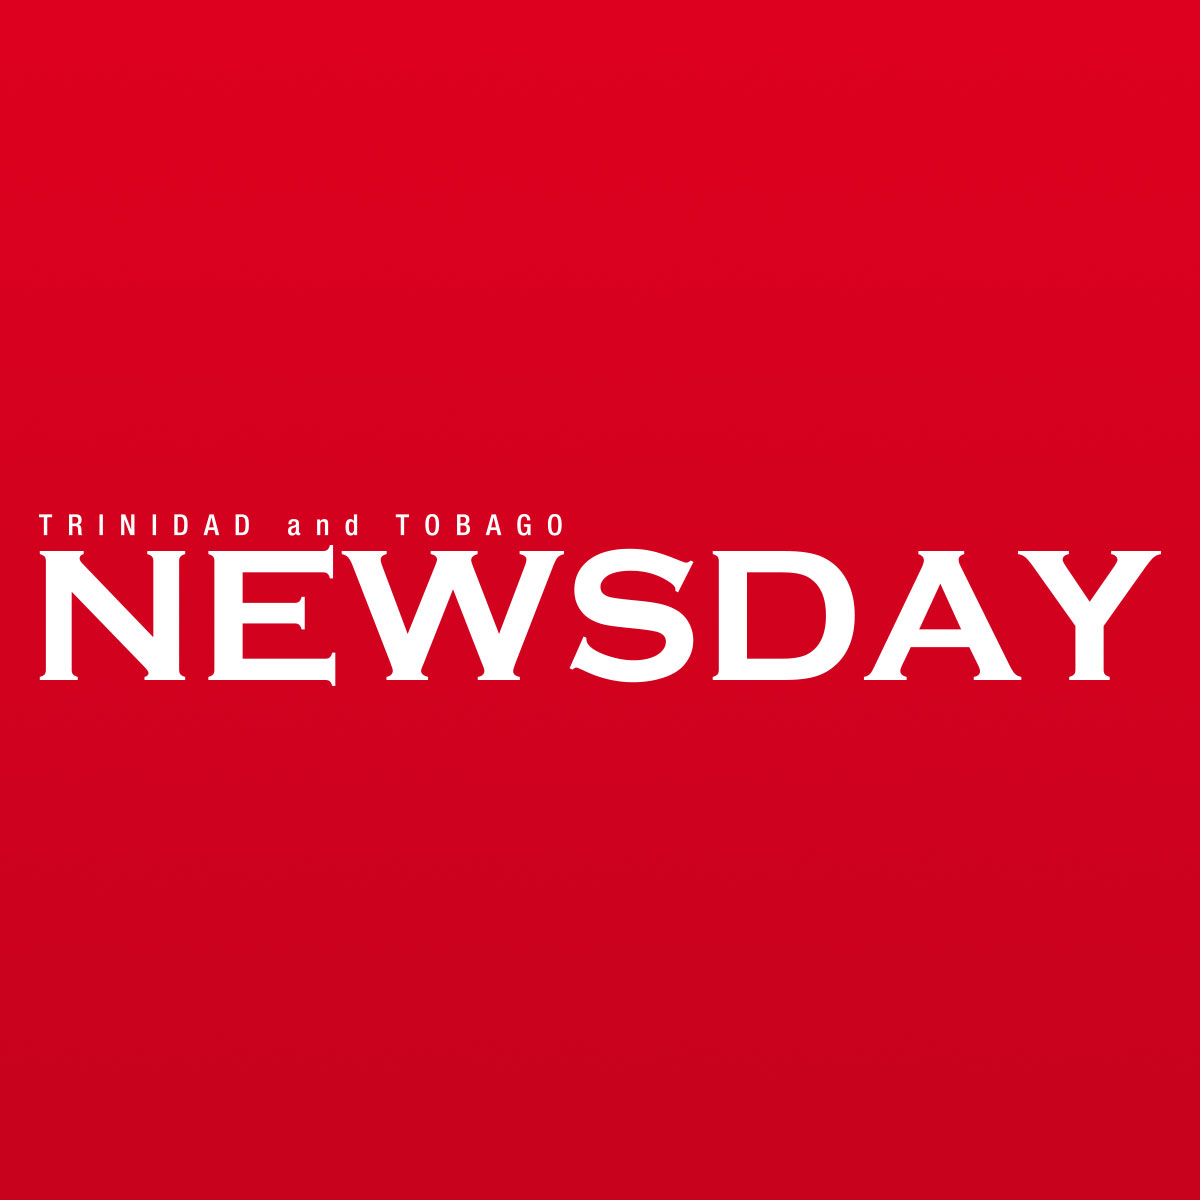 Image result for newsday trinidad papers